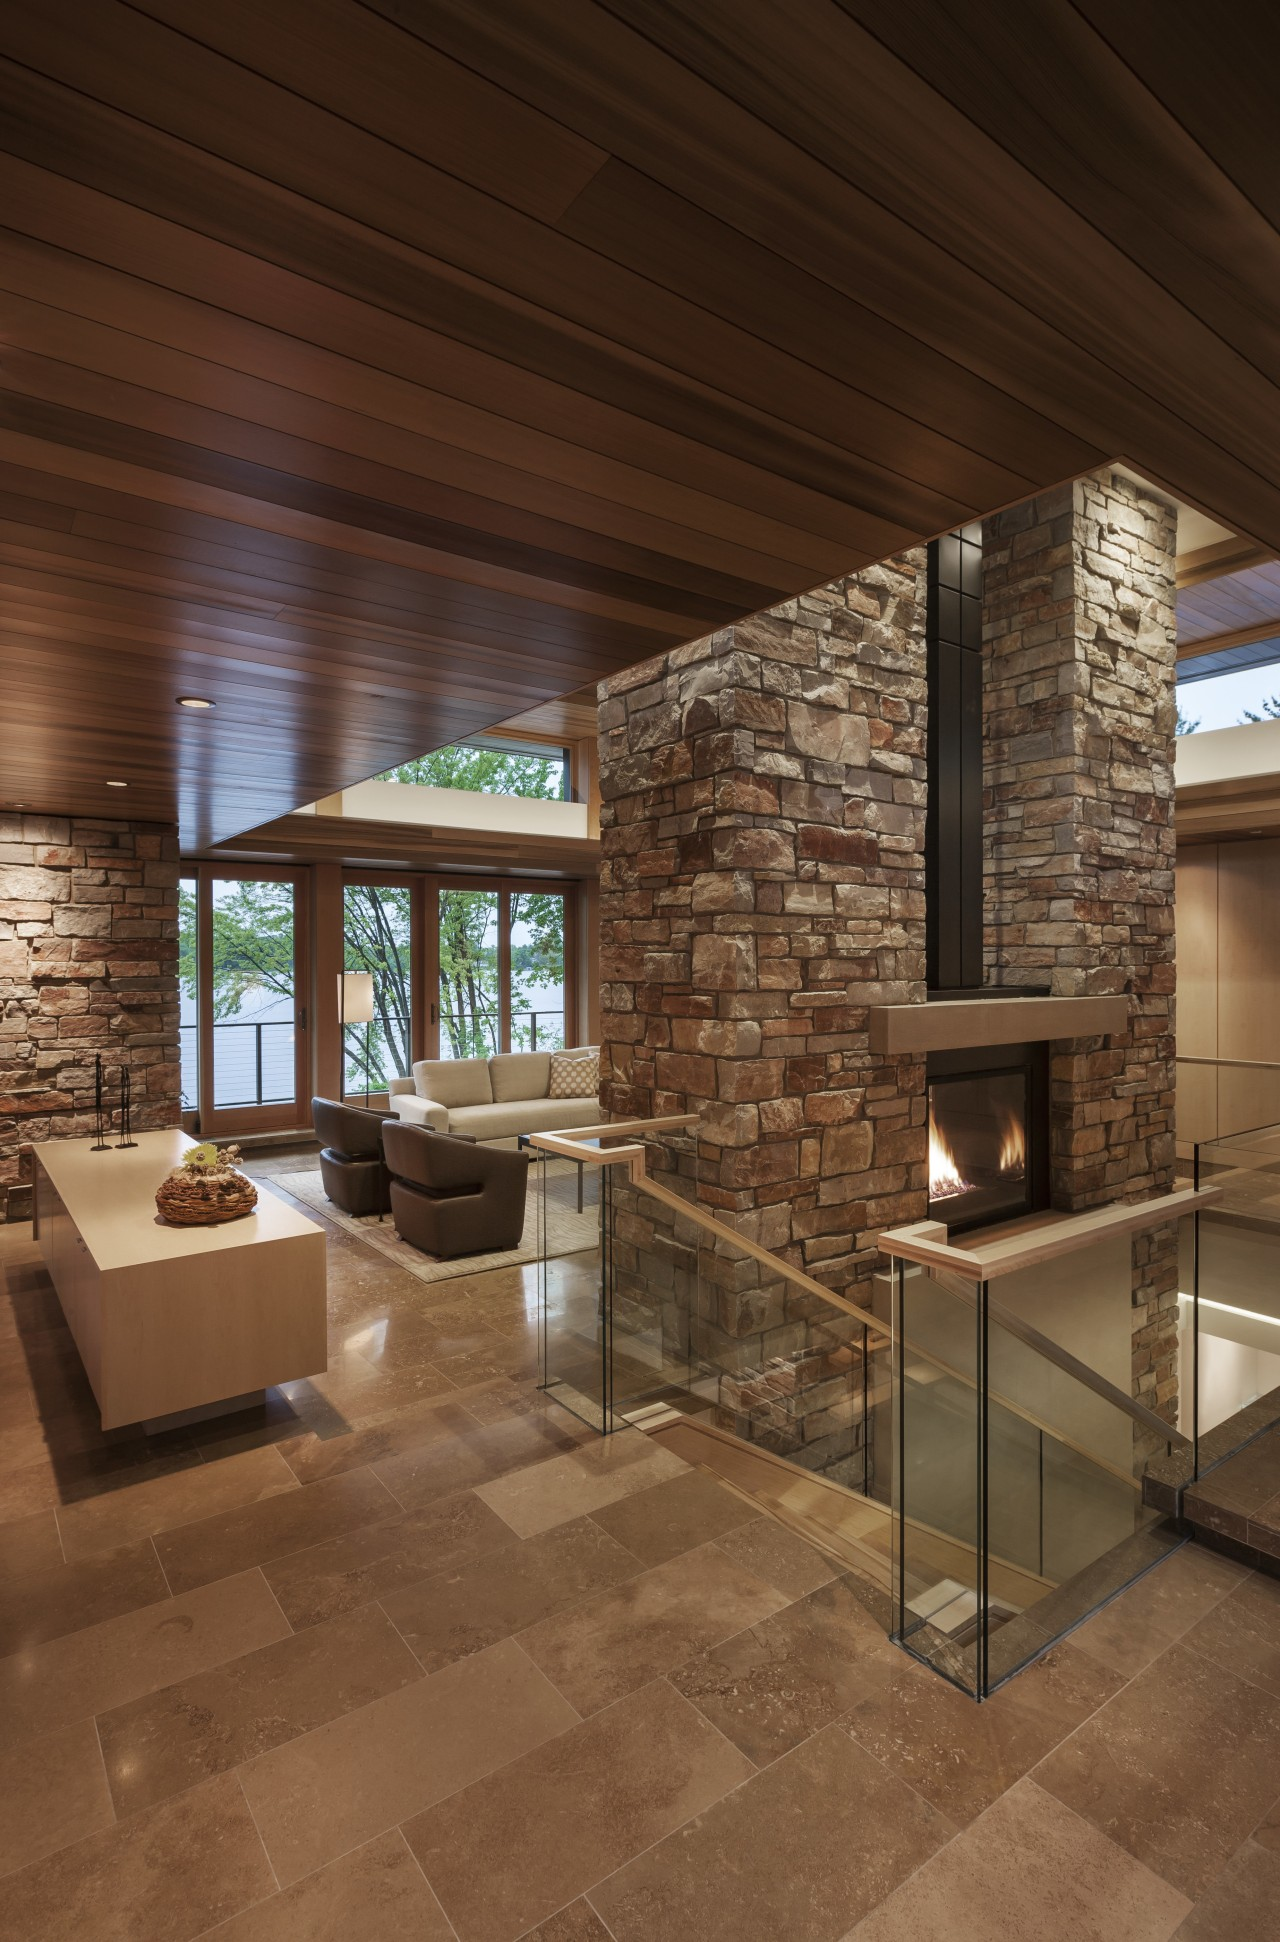 The warm palette of natural materials in this architecture, ceiling, fireplace, floor, flooring, home, interior design, living room, lobby, real estate, wood, wood flooring, brown